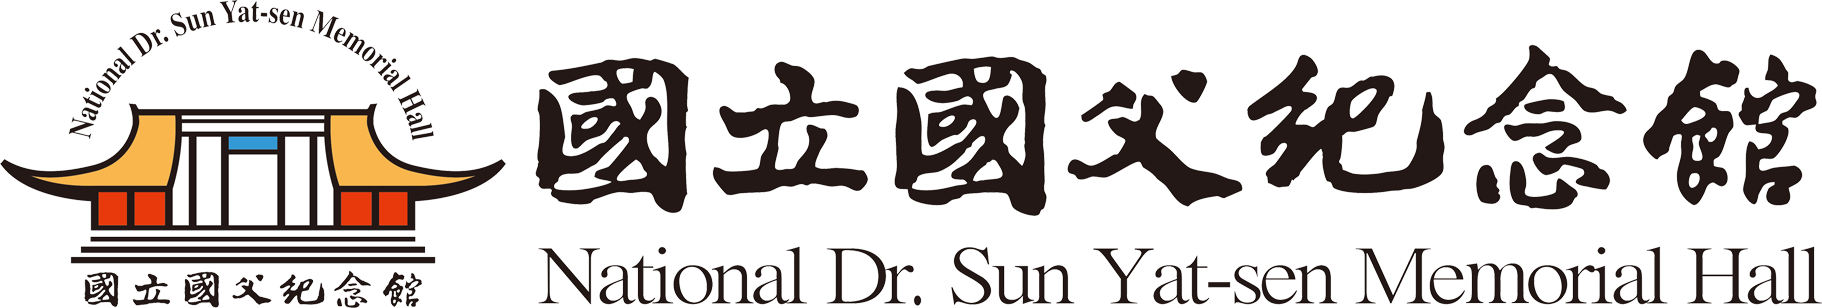 National Dr.Sun Yat-sen Memorial Hall-logo